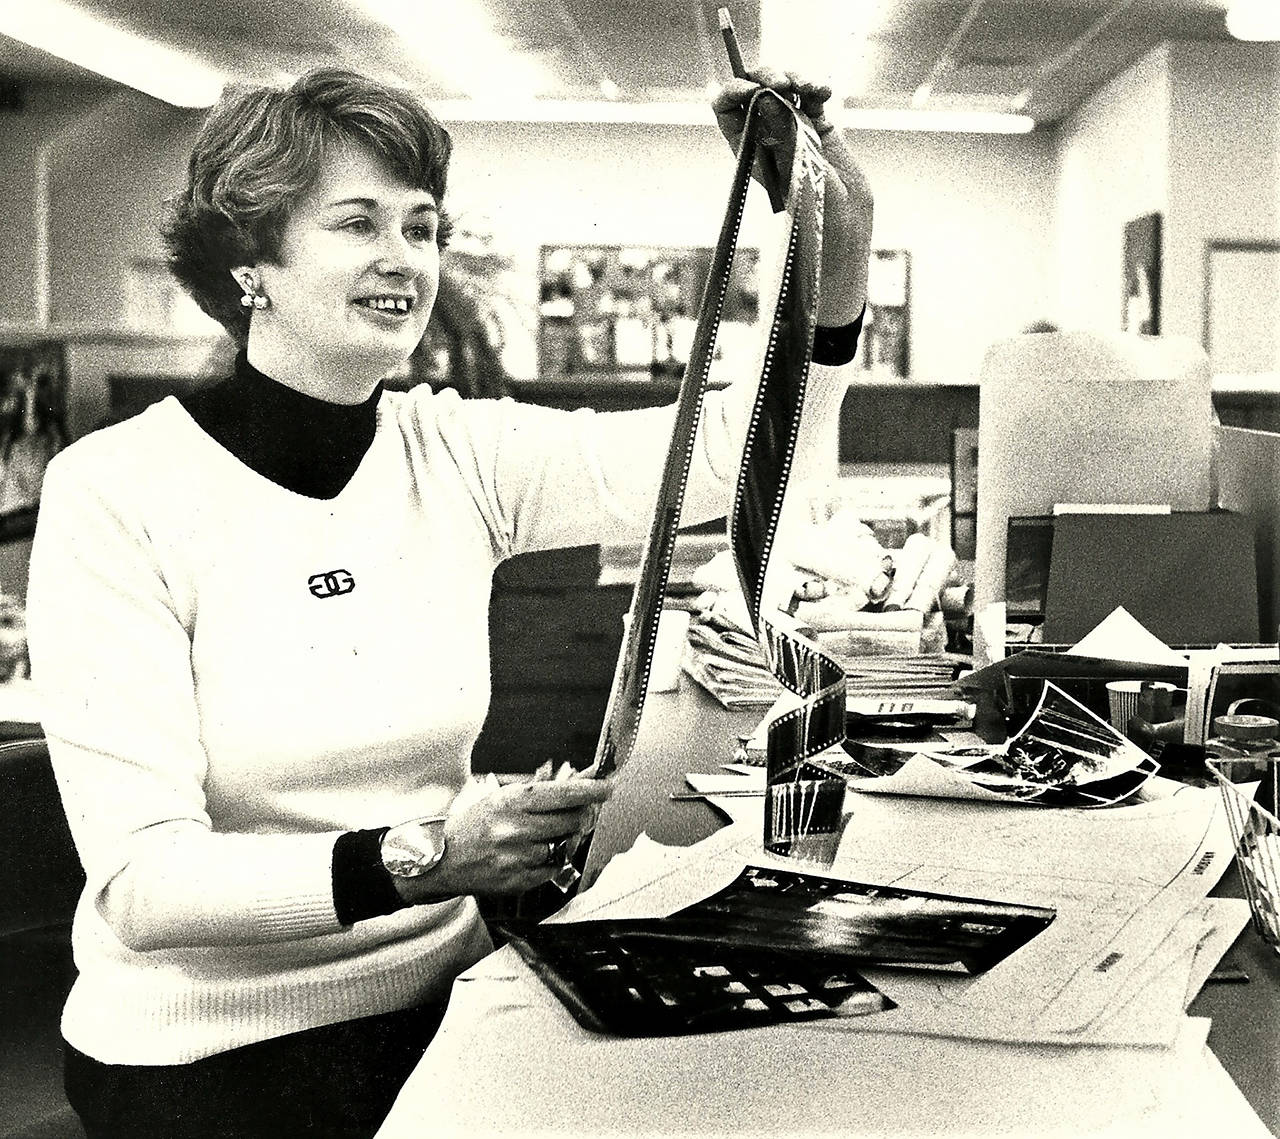 Jeanne Metzger, who retired from the Herald in 1990, works with film as editor of the newspaper's Panorama magazine. Metzger died Wednesday at age 89. (Herald archives)